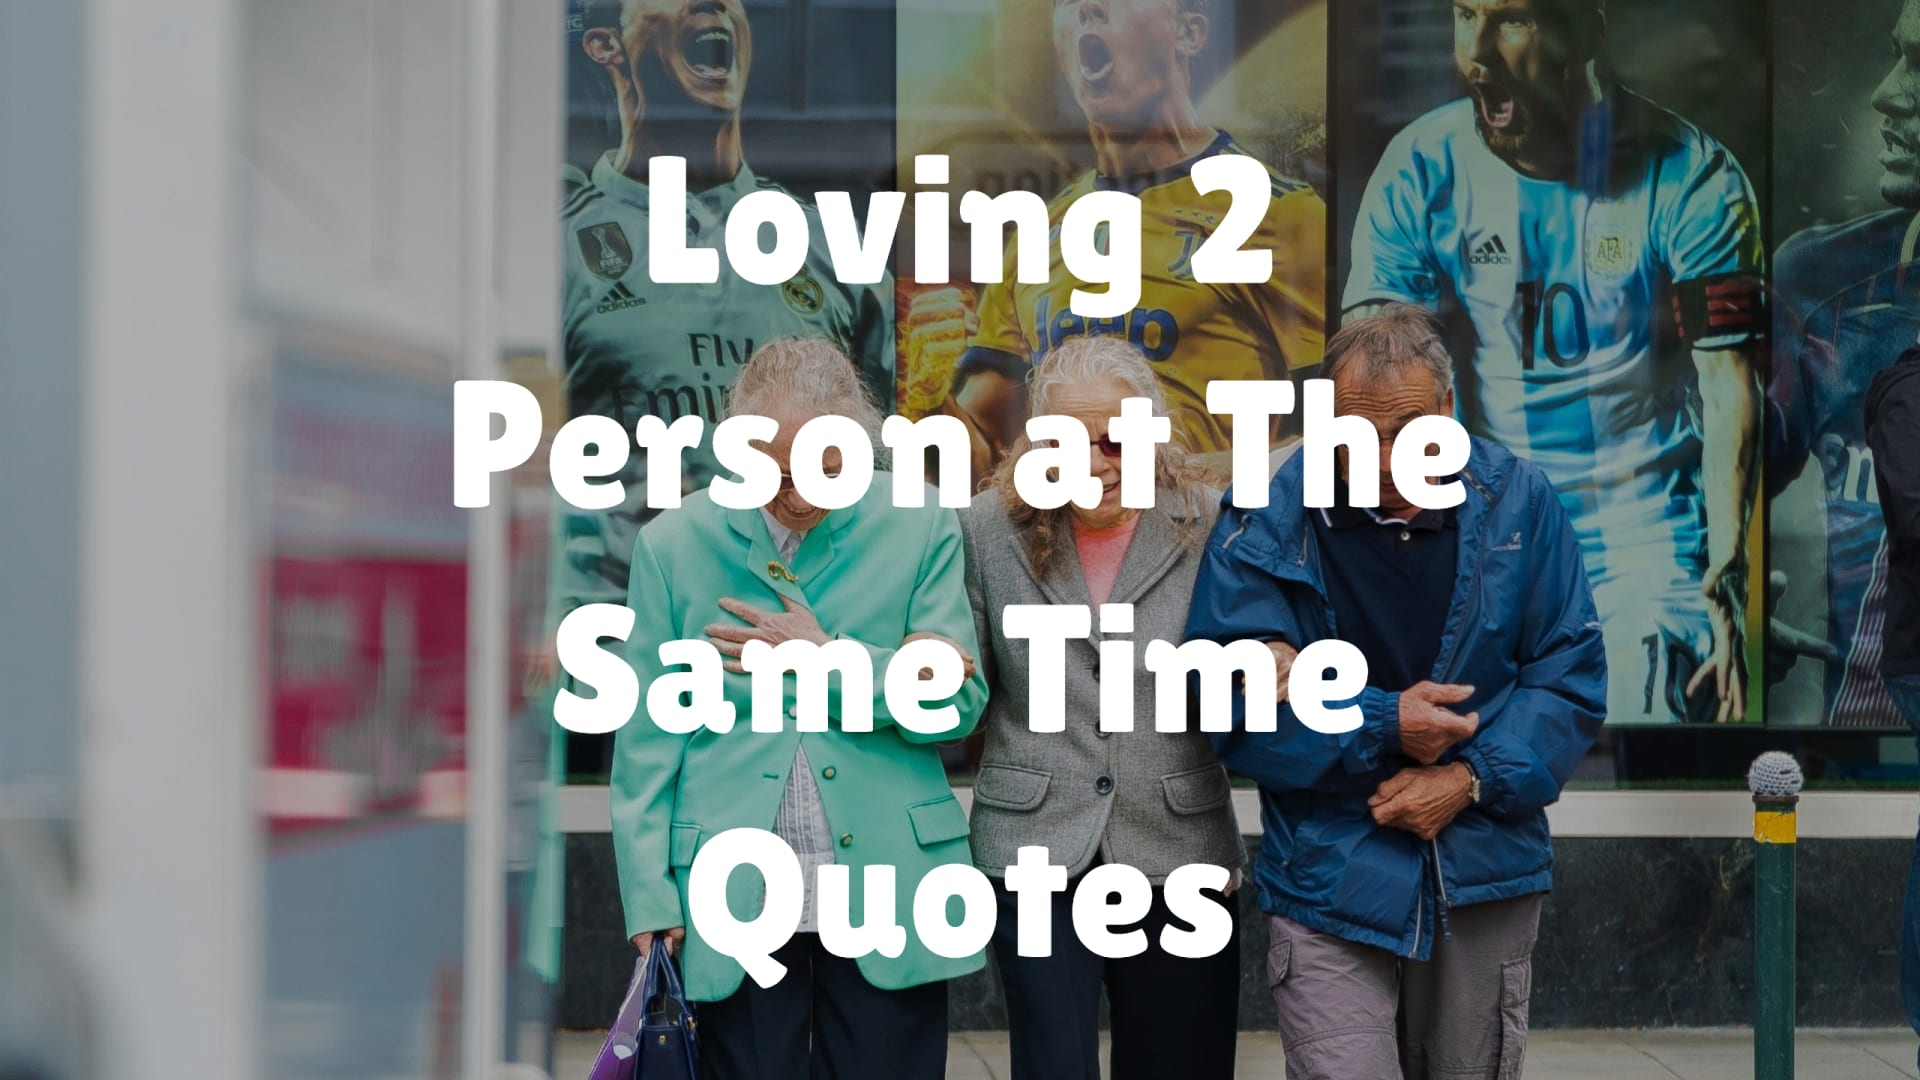 Loving 2 Person at The Same Time Quotes